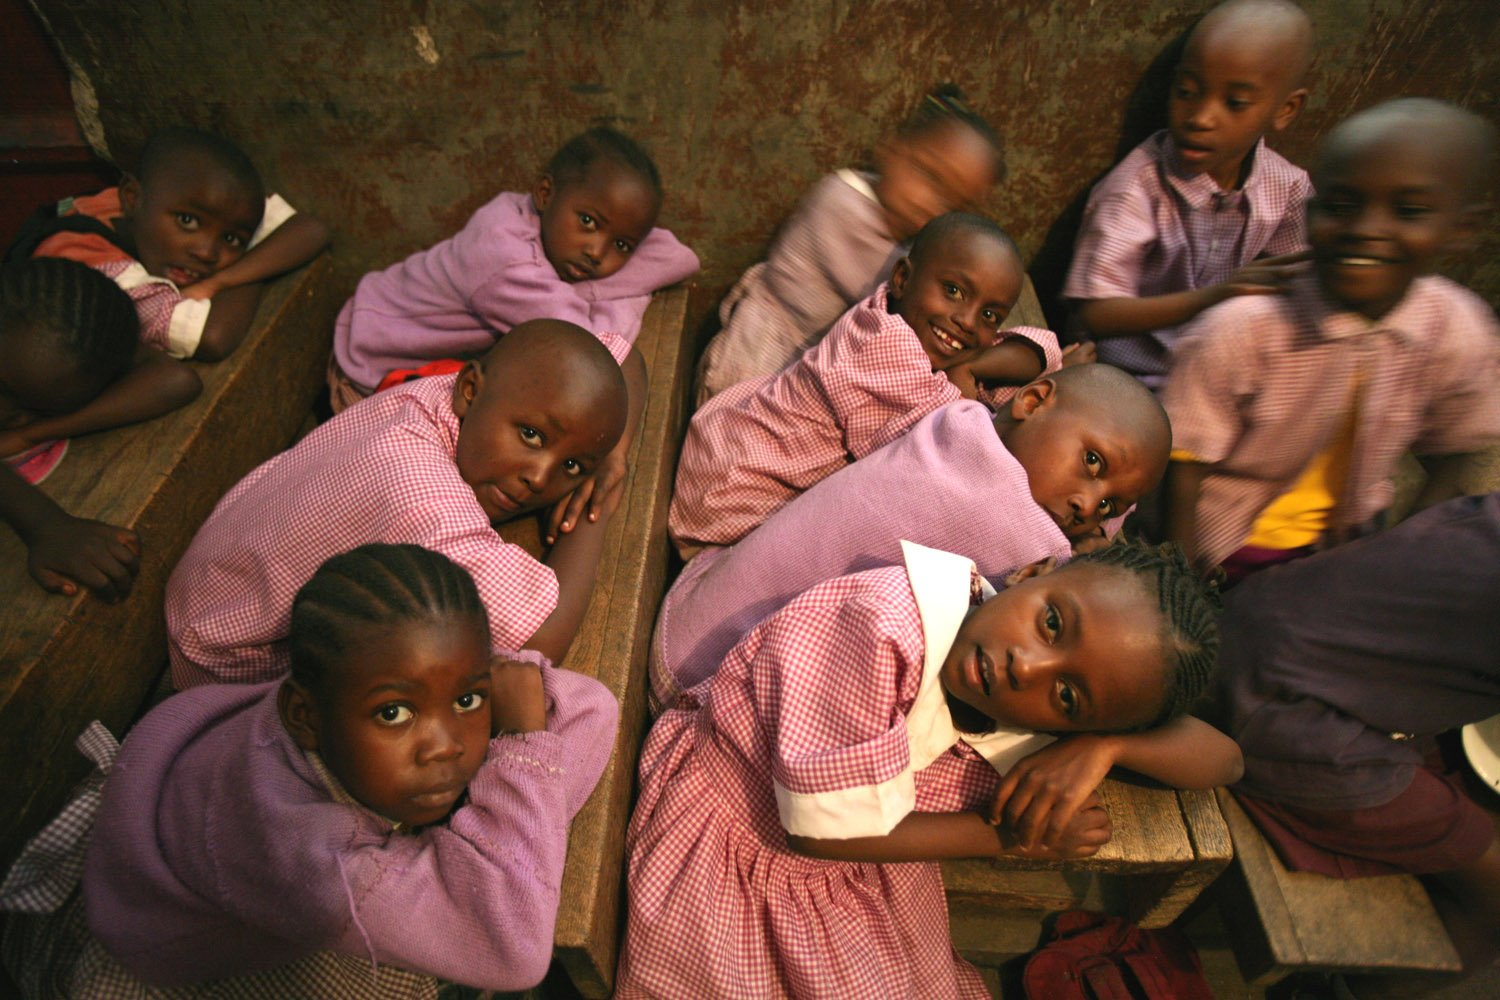 The school in Mathare slum in Nairobi, Kenya, September 2007. Mathare slum is Africa's largest slums, with almost one million residents struggling with limited access to clean water, sanitation, healthcare and education. Many schools try offering some b